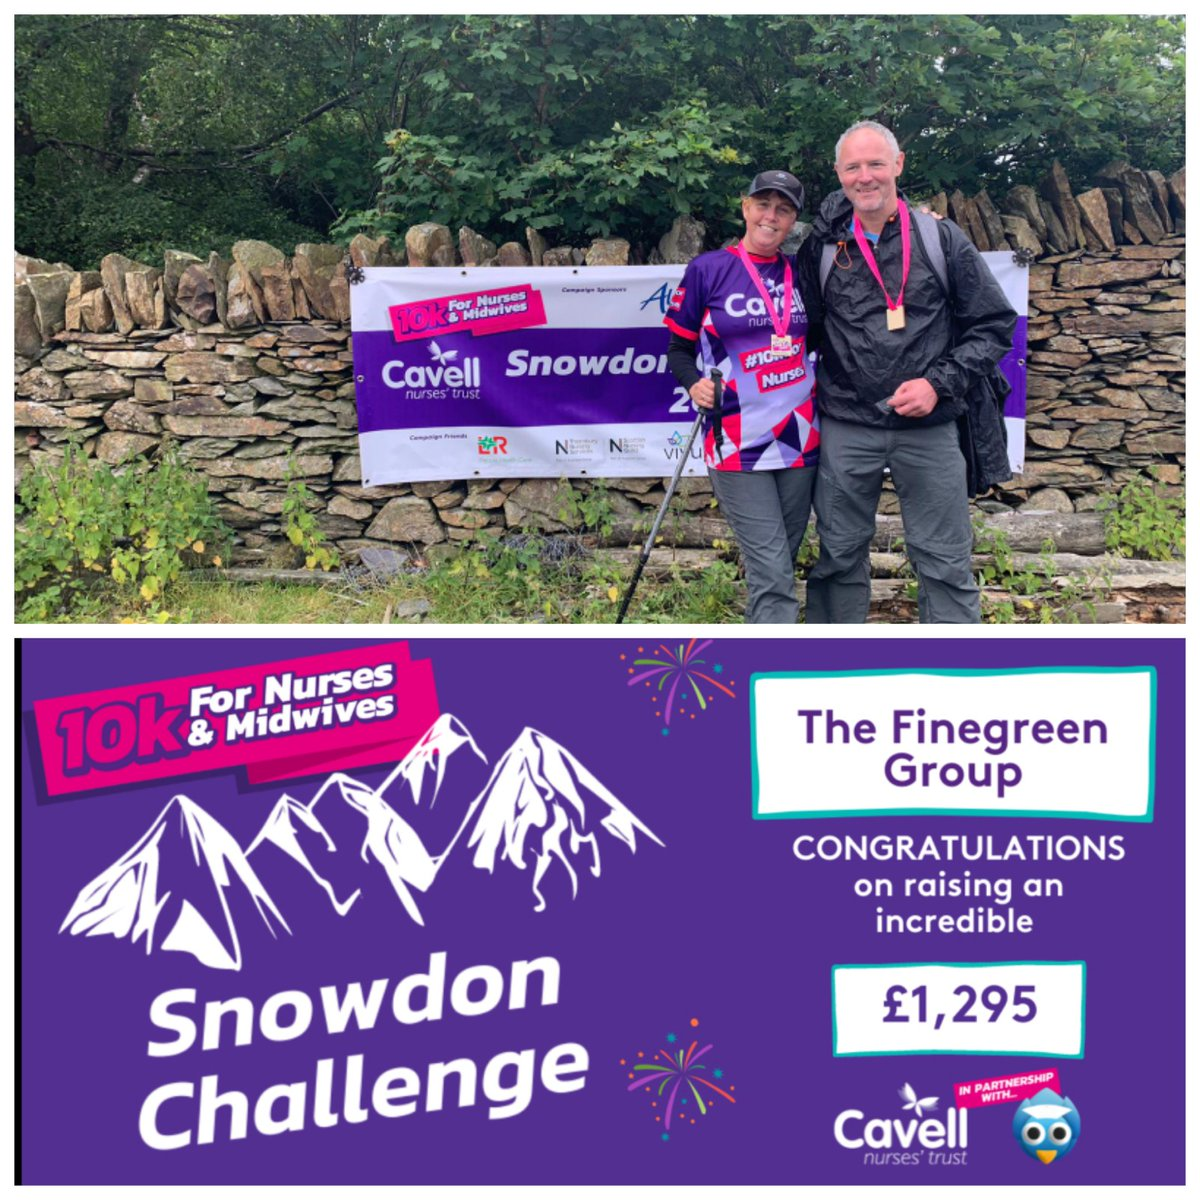 Congratulations to our Finance Controller Beverley Finan who has raised £1,295 for the @CavellTrust  with her recent hike up #Snowdon as part of their 10k for Nurses & Midwives challenge. Great job Bev!  #CavellNursesTrust #fundraising #charity https://t.co/RzMGZLhMYW